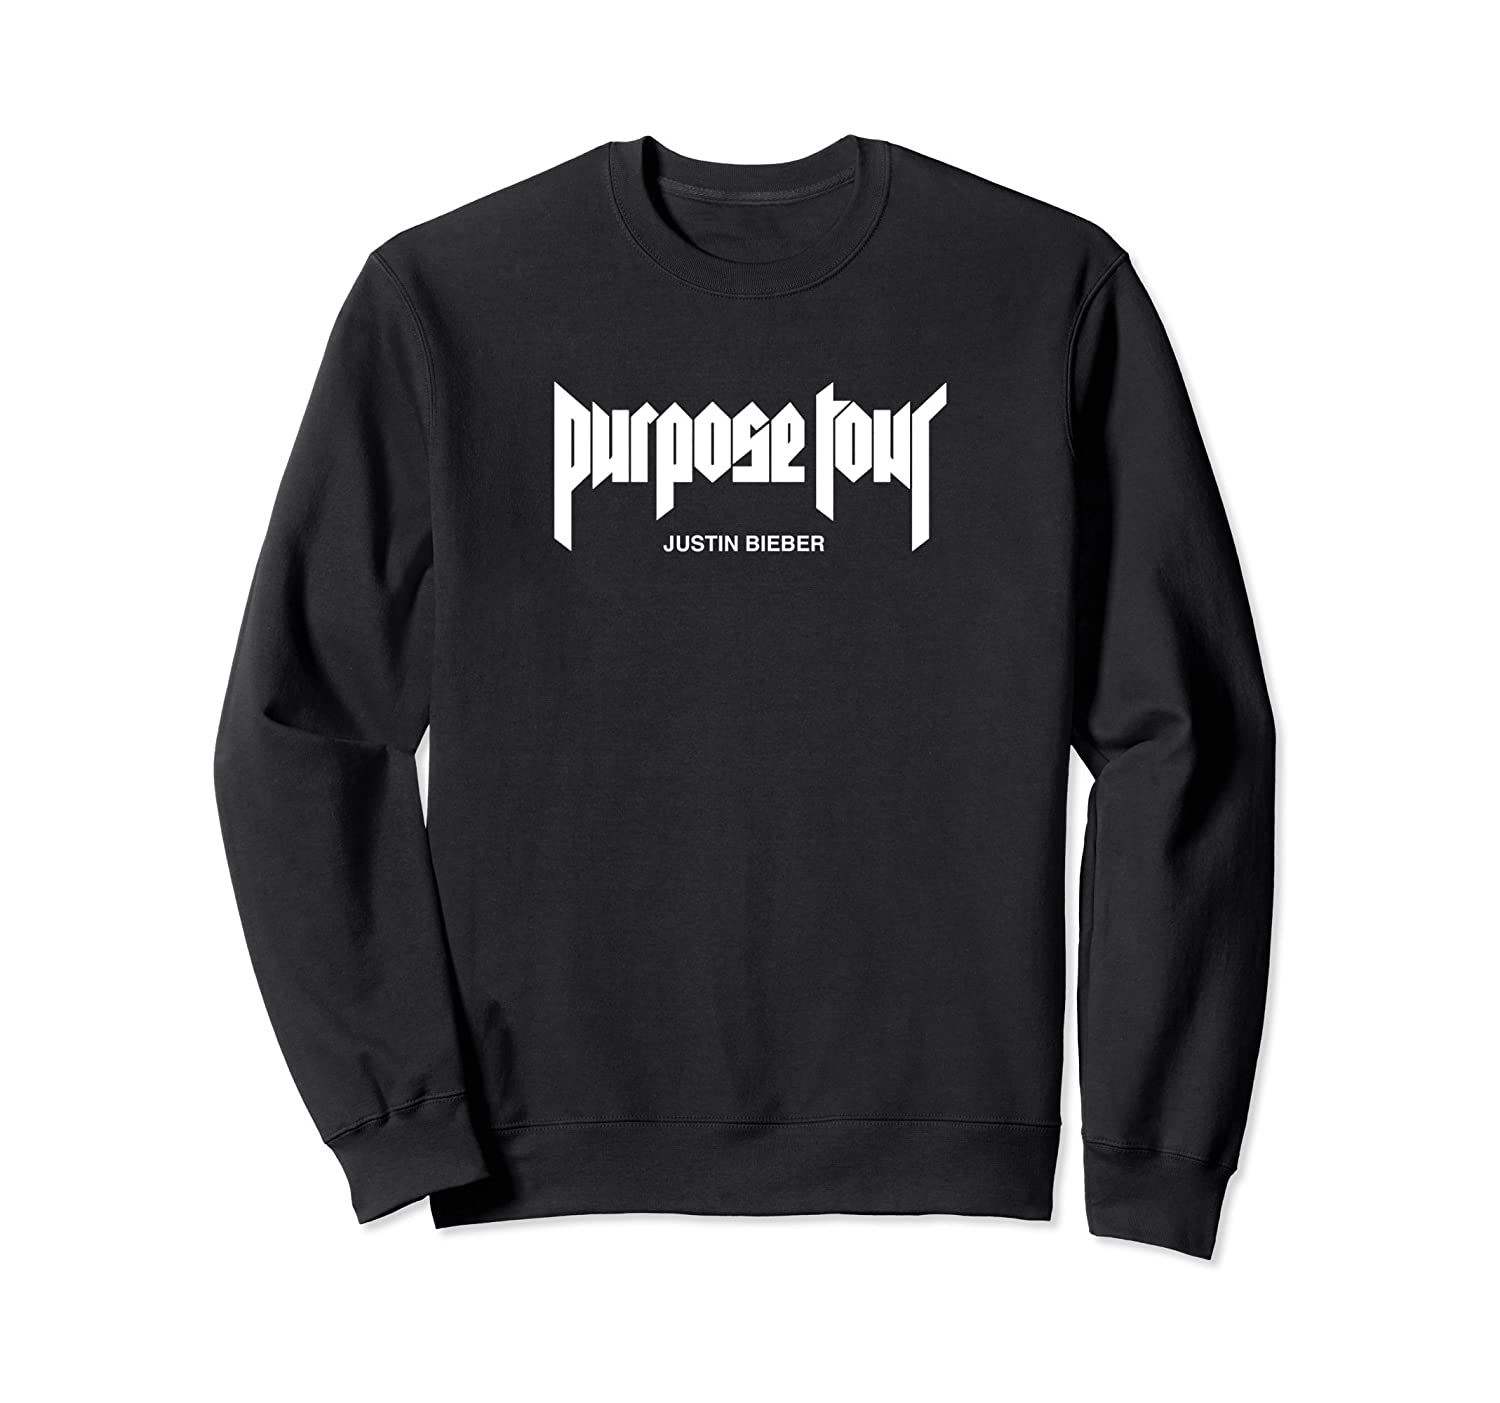 Justin Bieber White Purpose Tour Merch Logo Sweatshirt-alottee gift